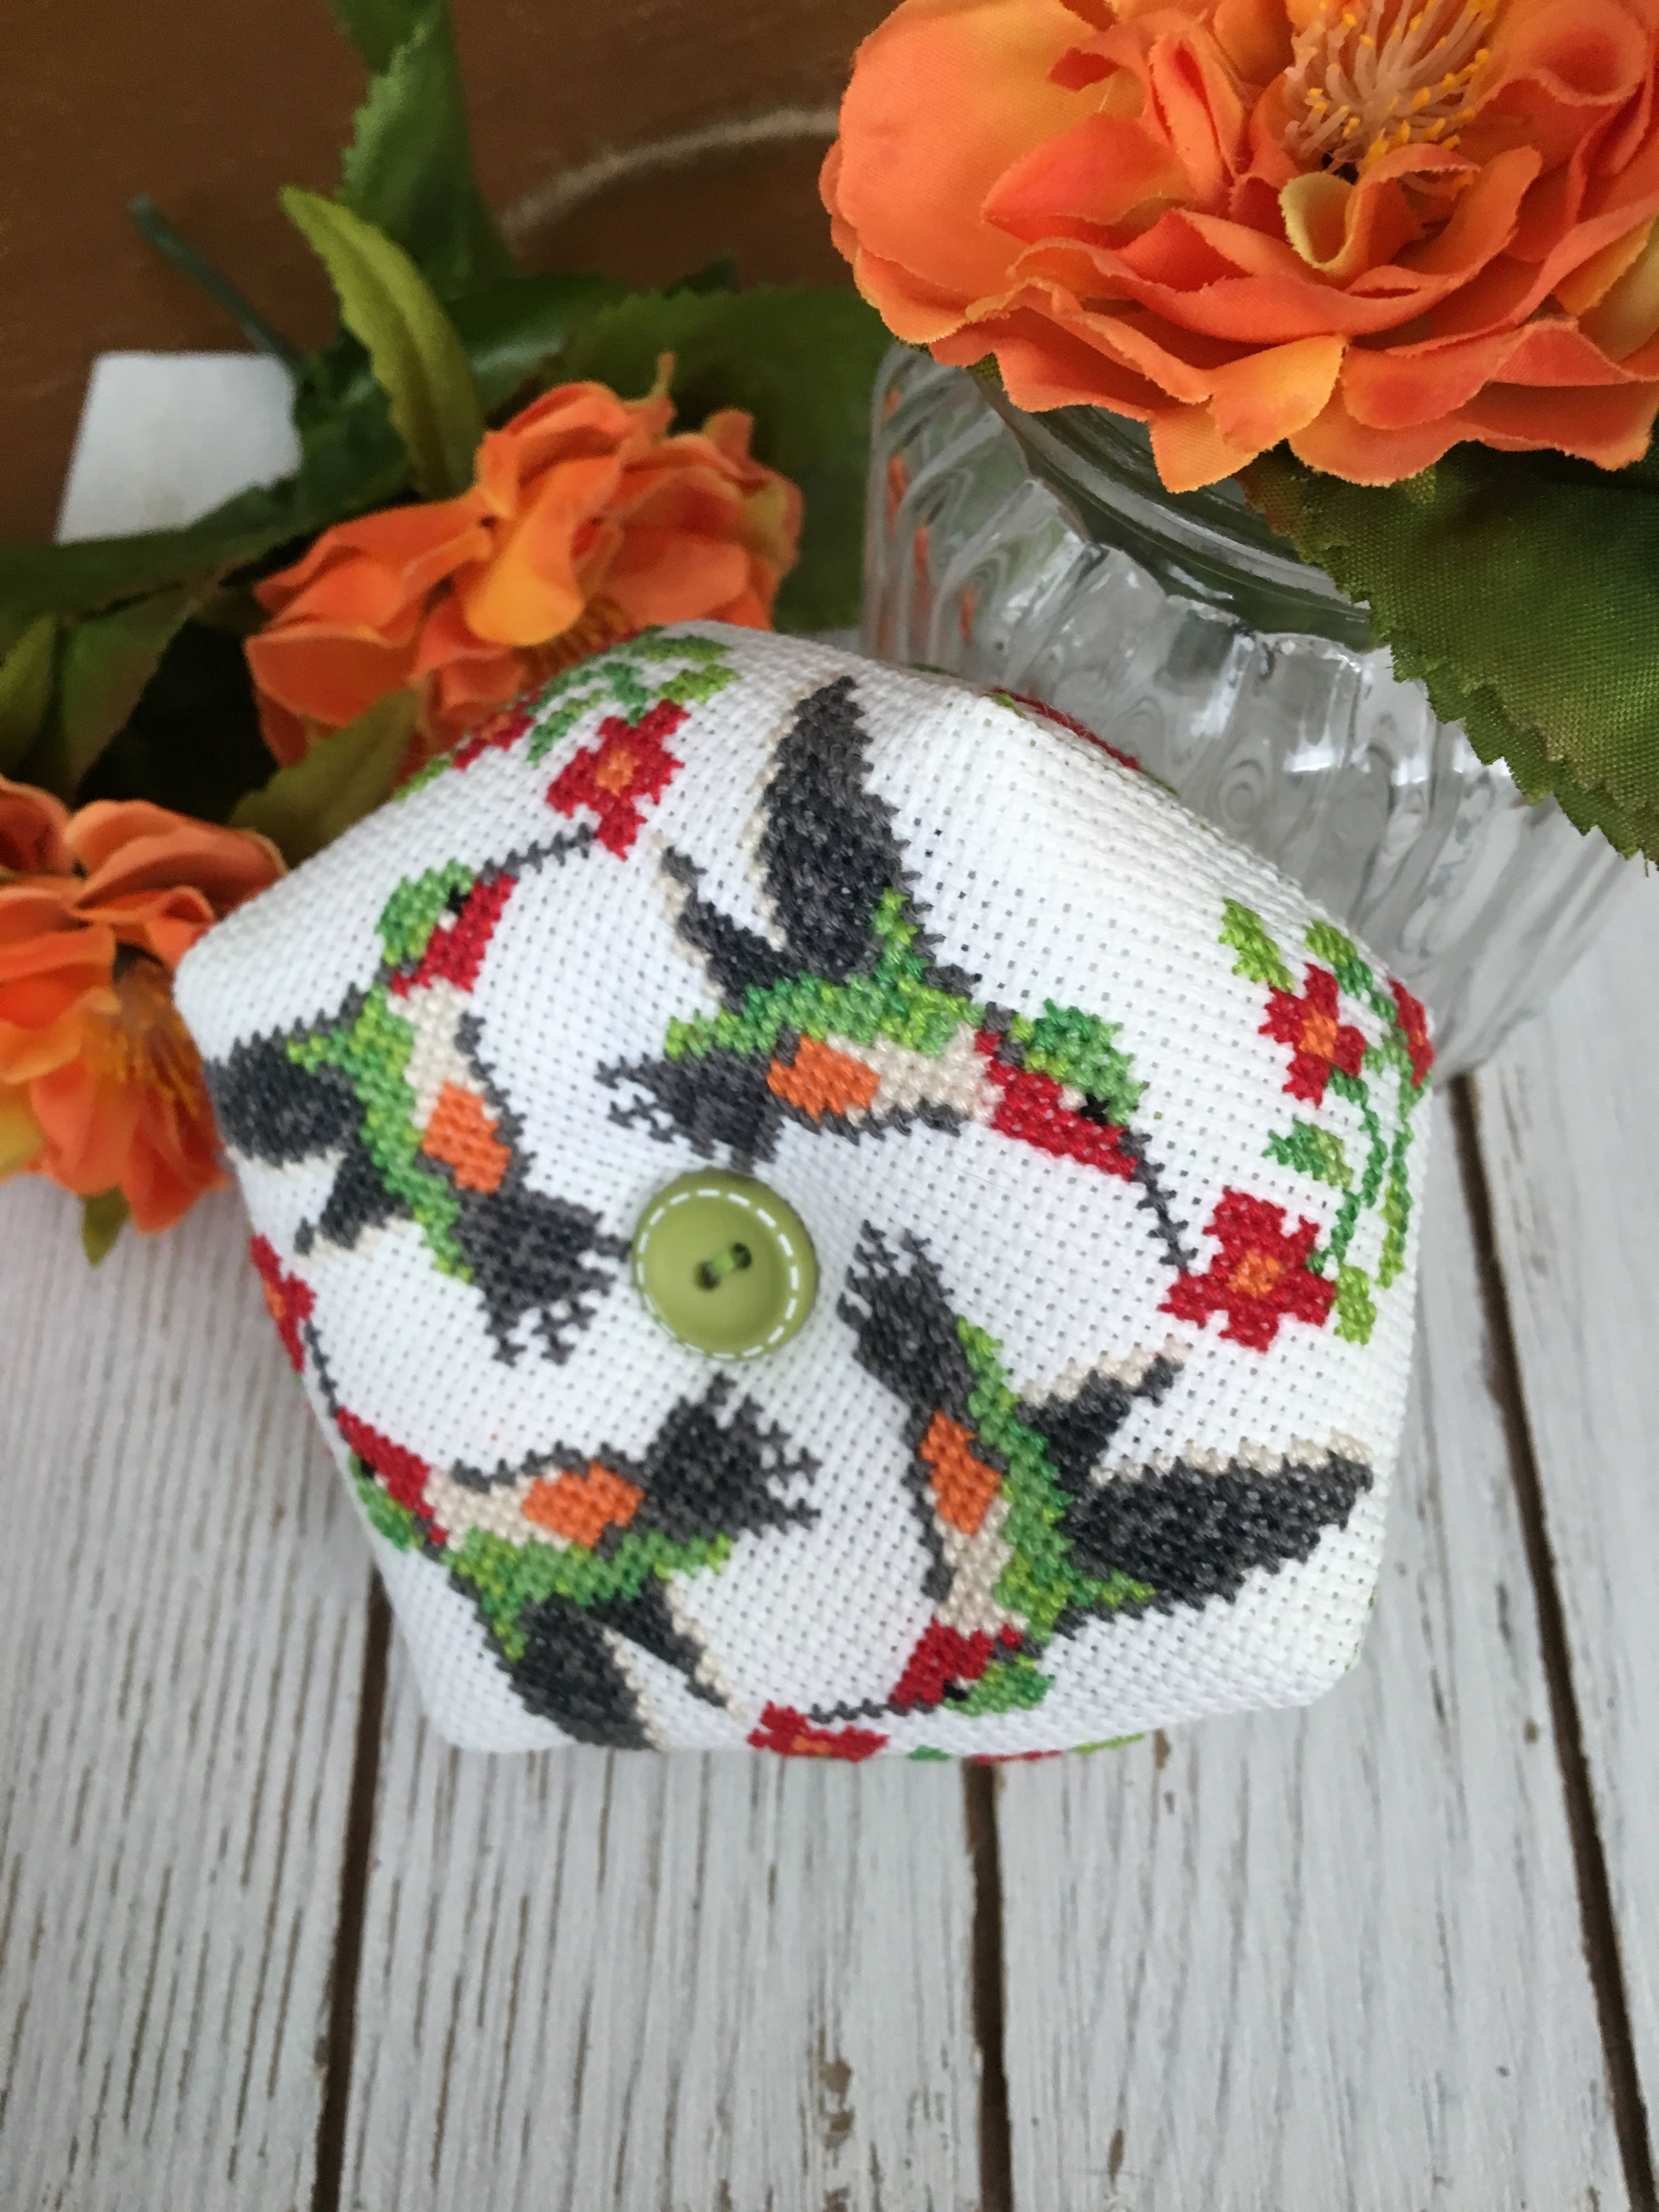 Counted Cross Stitch Patterns Needlework for Embroidery Hummingbirds Spring